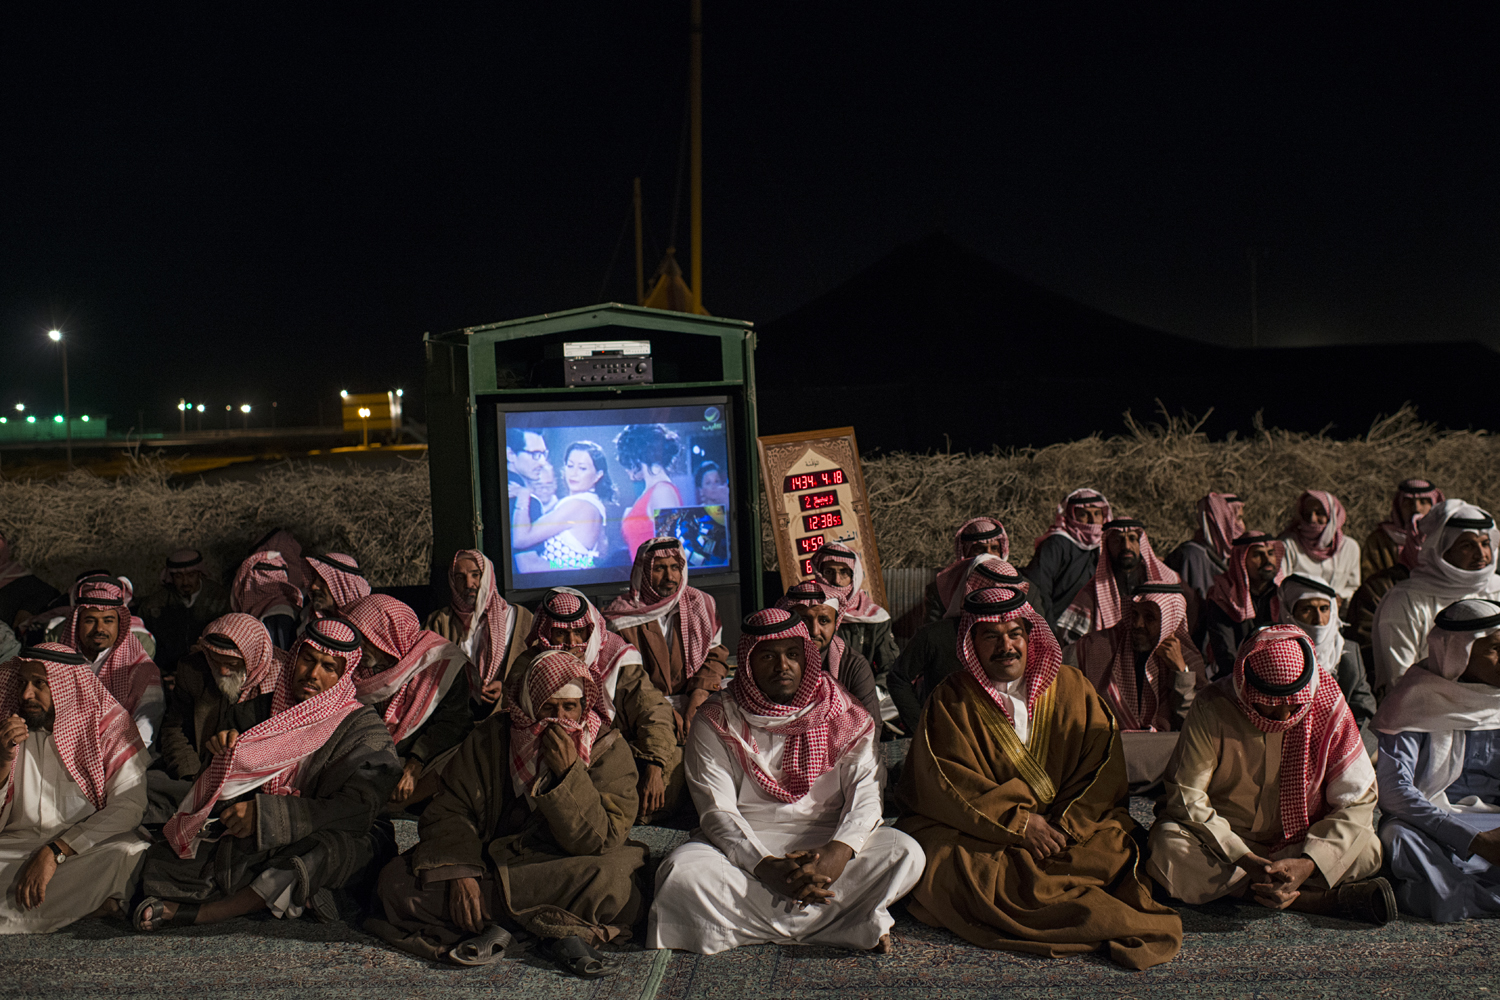 March 1, 2013. Saudi citizens rest after presenting Saudi billionaire HRH Prince al Waleed bin Talal with petitions for his help, at a desert camp outside of Riyadh, Saudi Arabia.